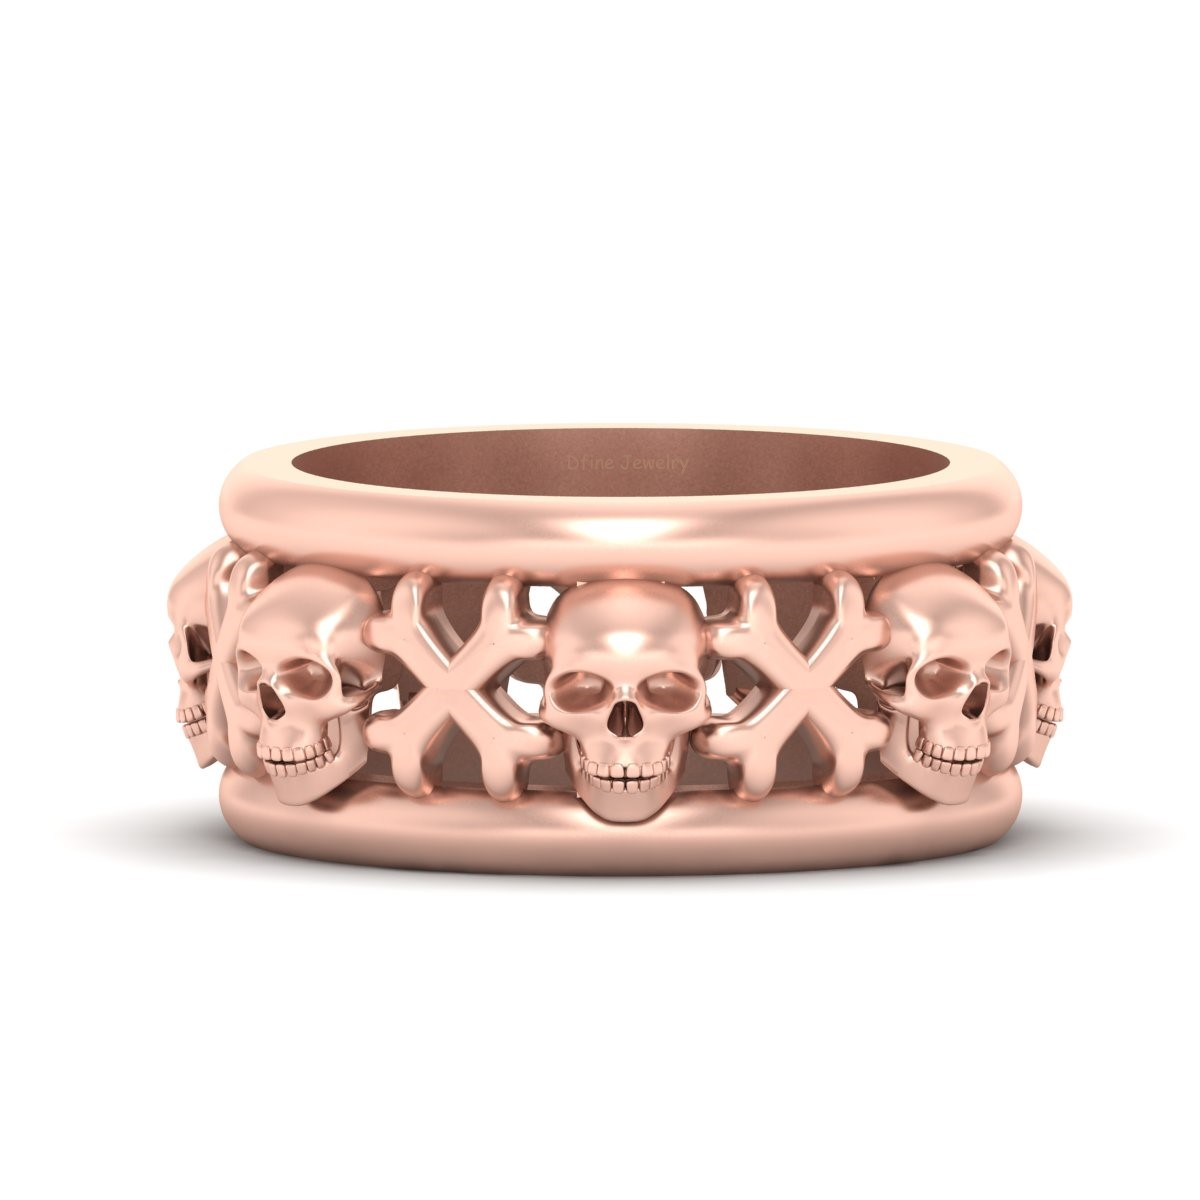 Skull Wedding Band For Men Skull And Crossbones Band Badass Ring